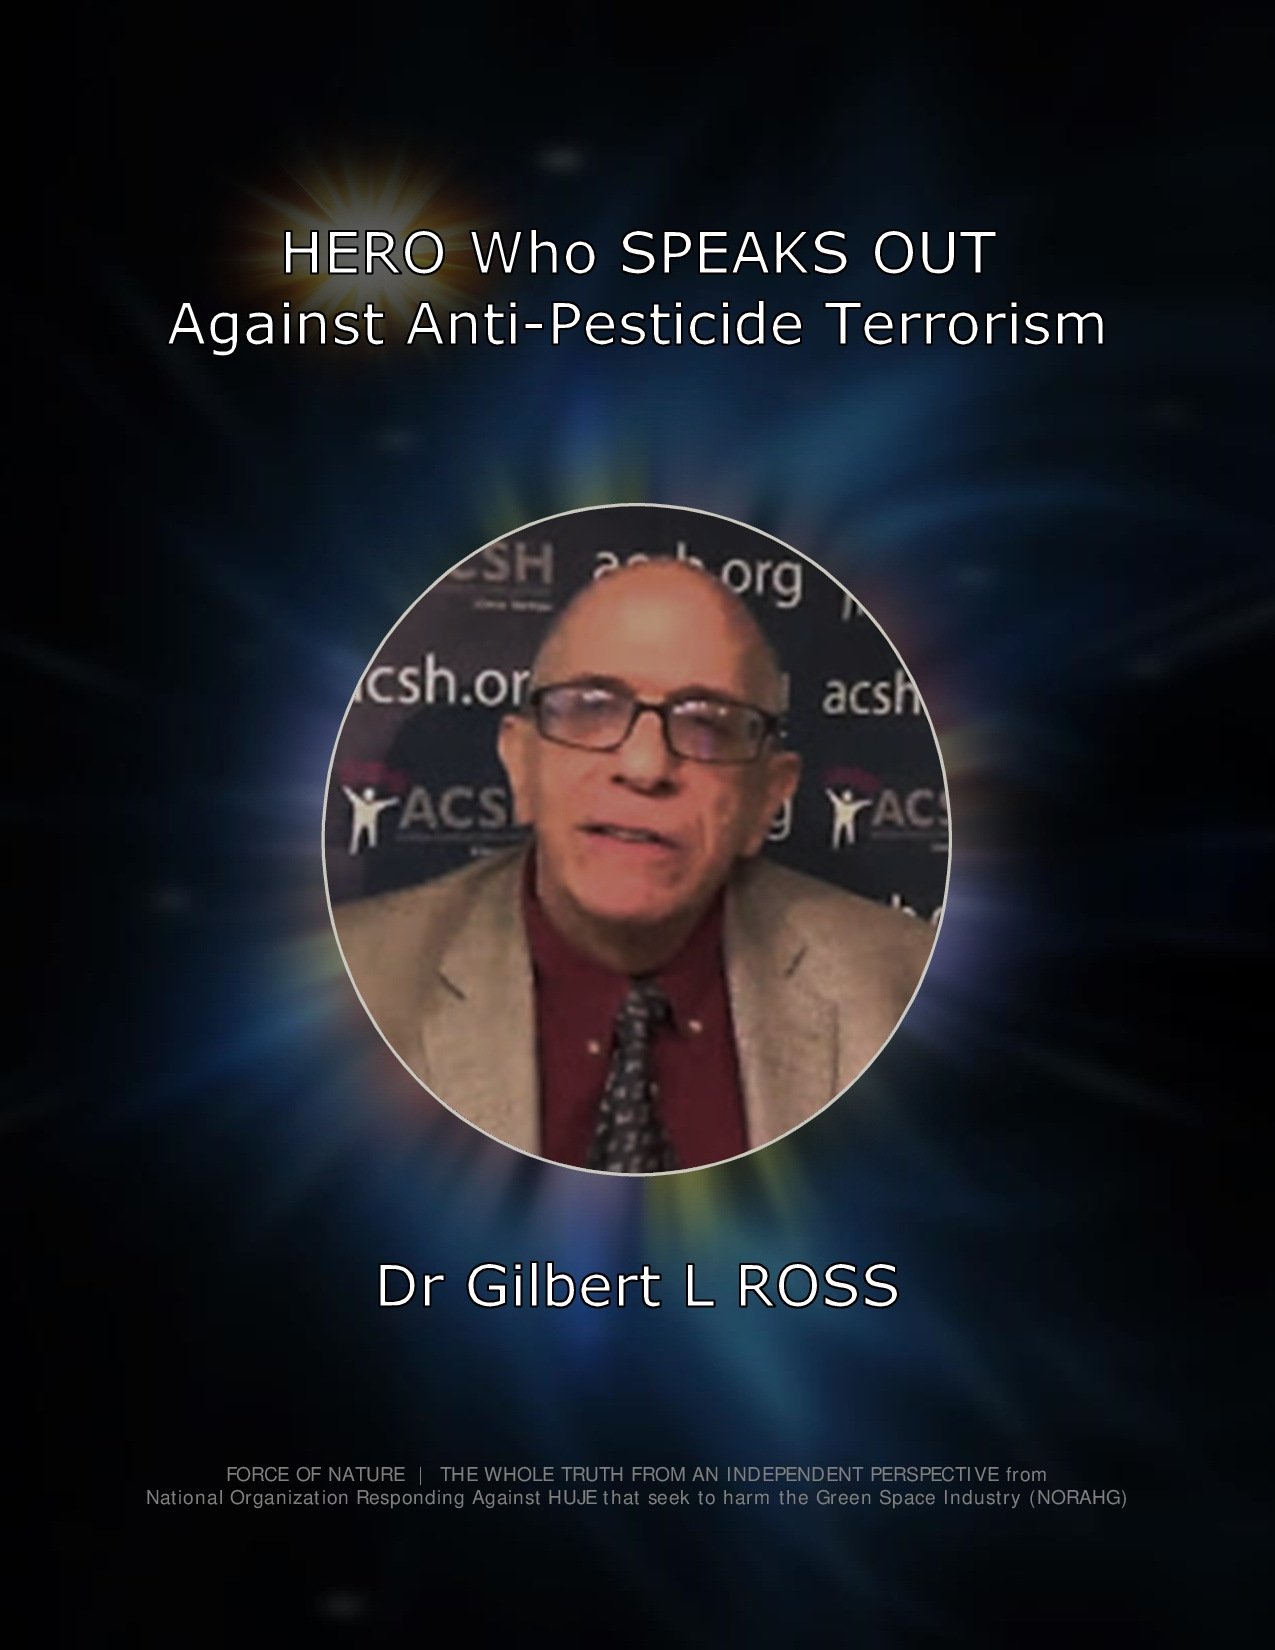 ROSS, Dr Gilbert L